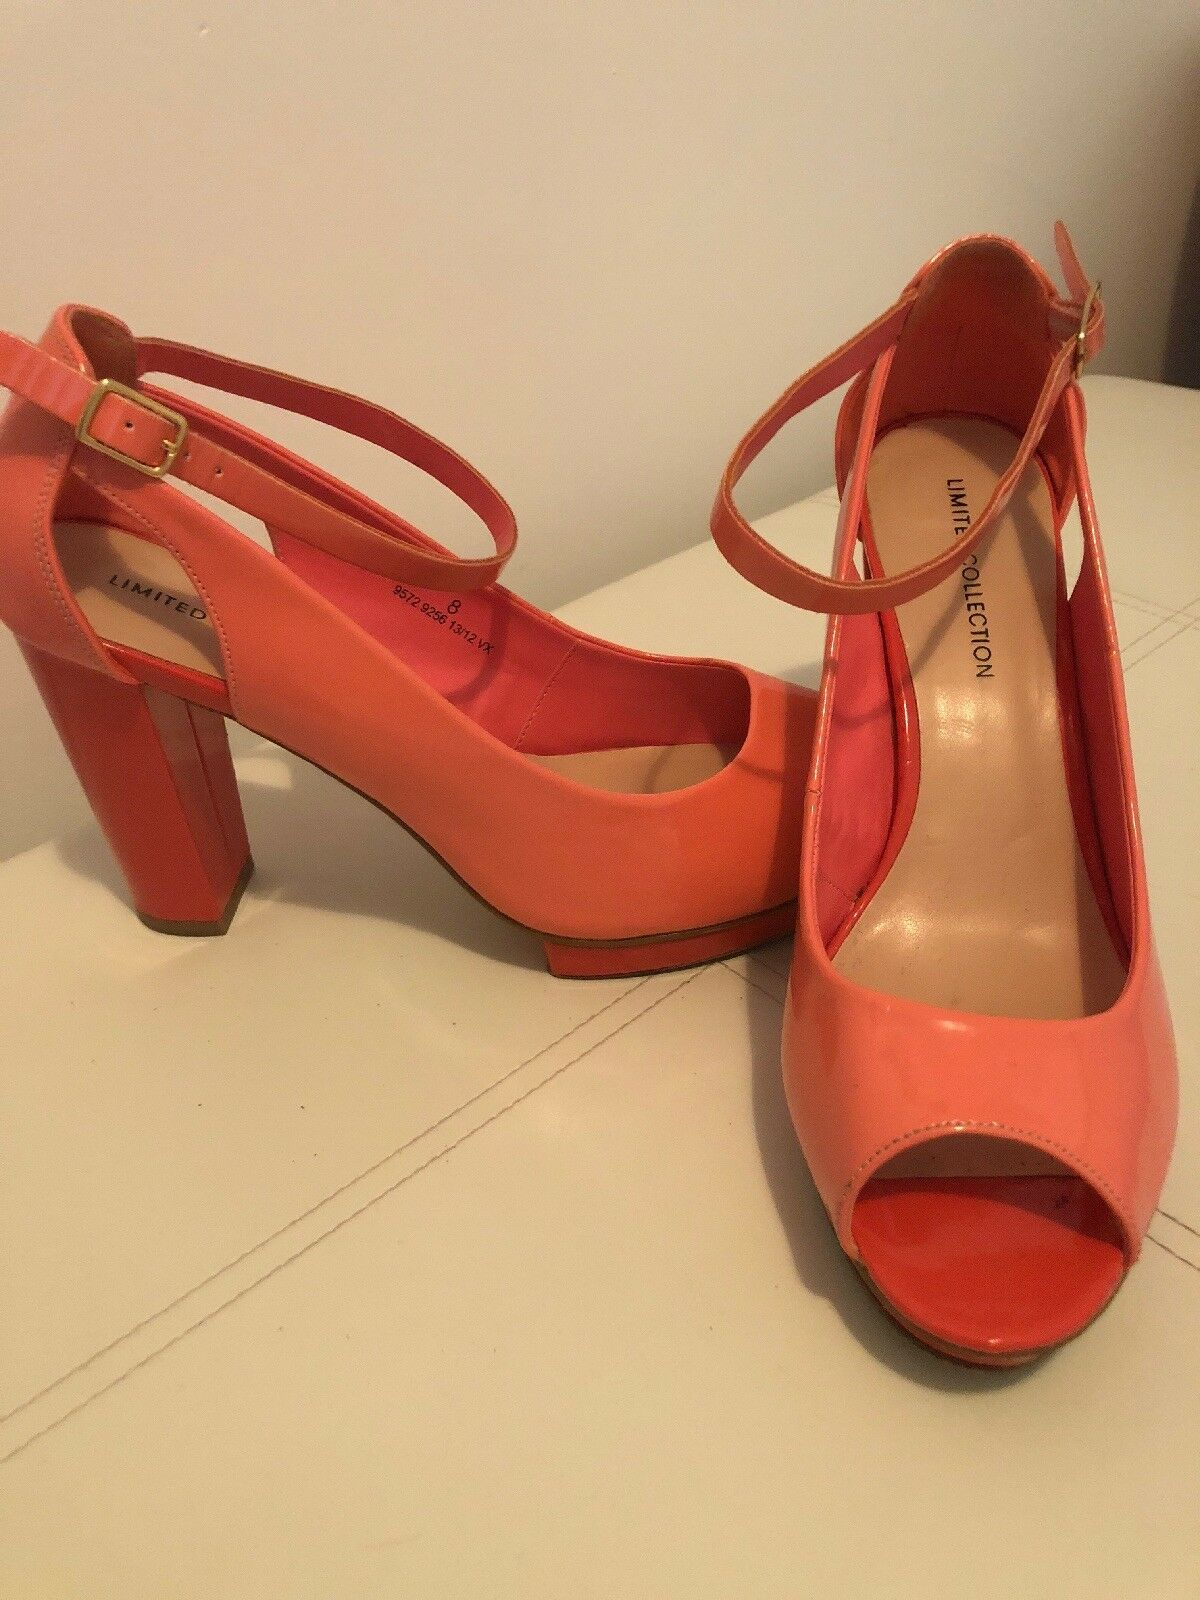 M&S  Limited Edition Two toe Tone Pink Patent Peep toe Two Court Shoe With Ankle Strap 8 fc7d6e